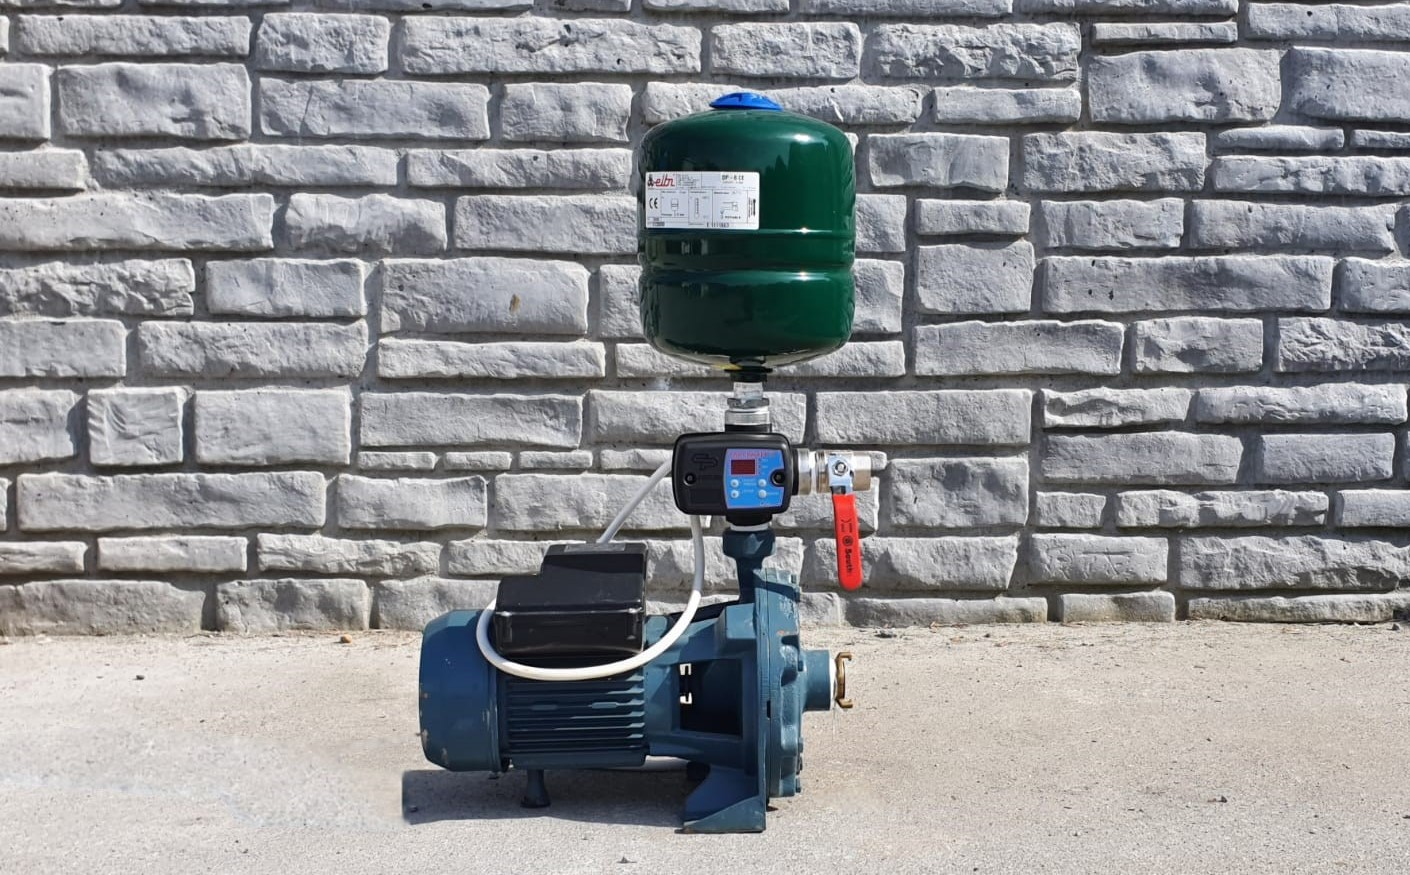 campion water pump for agricultural water management